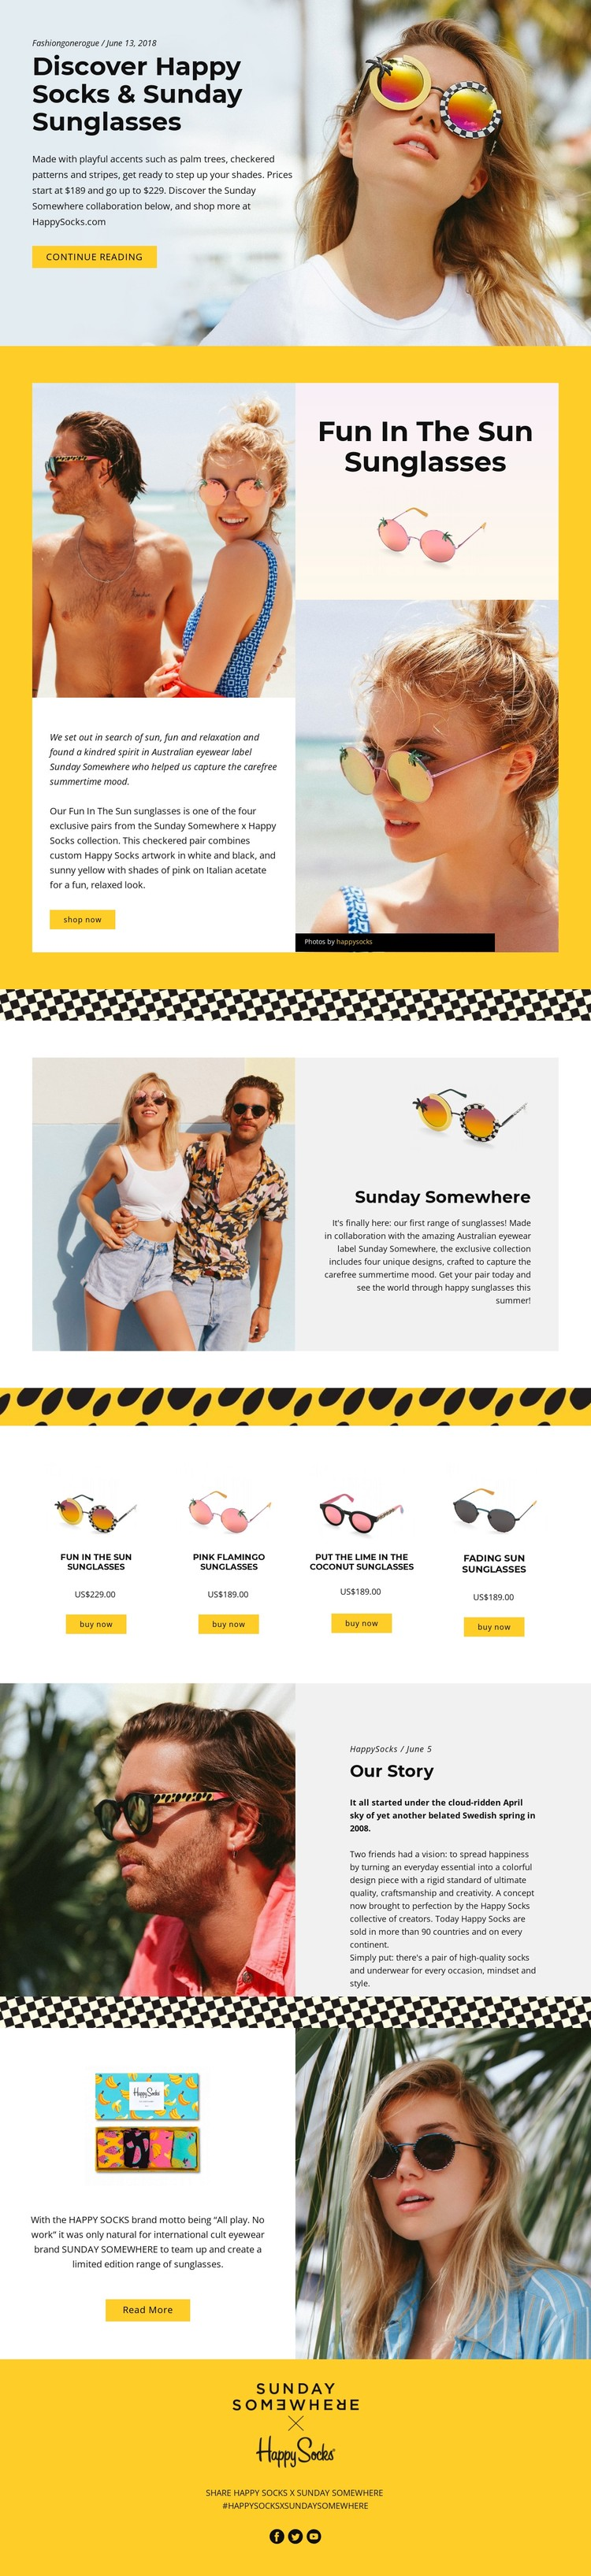 Fun Sunglasses Static Site Generator